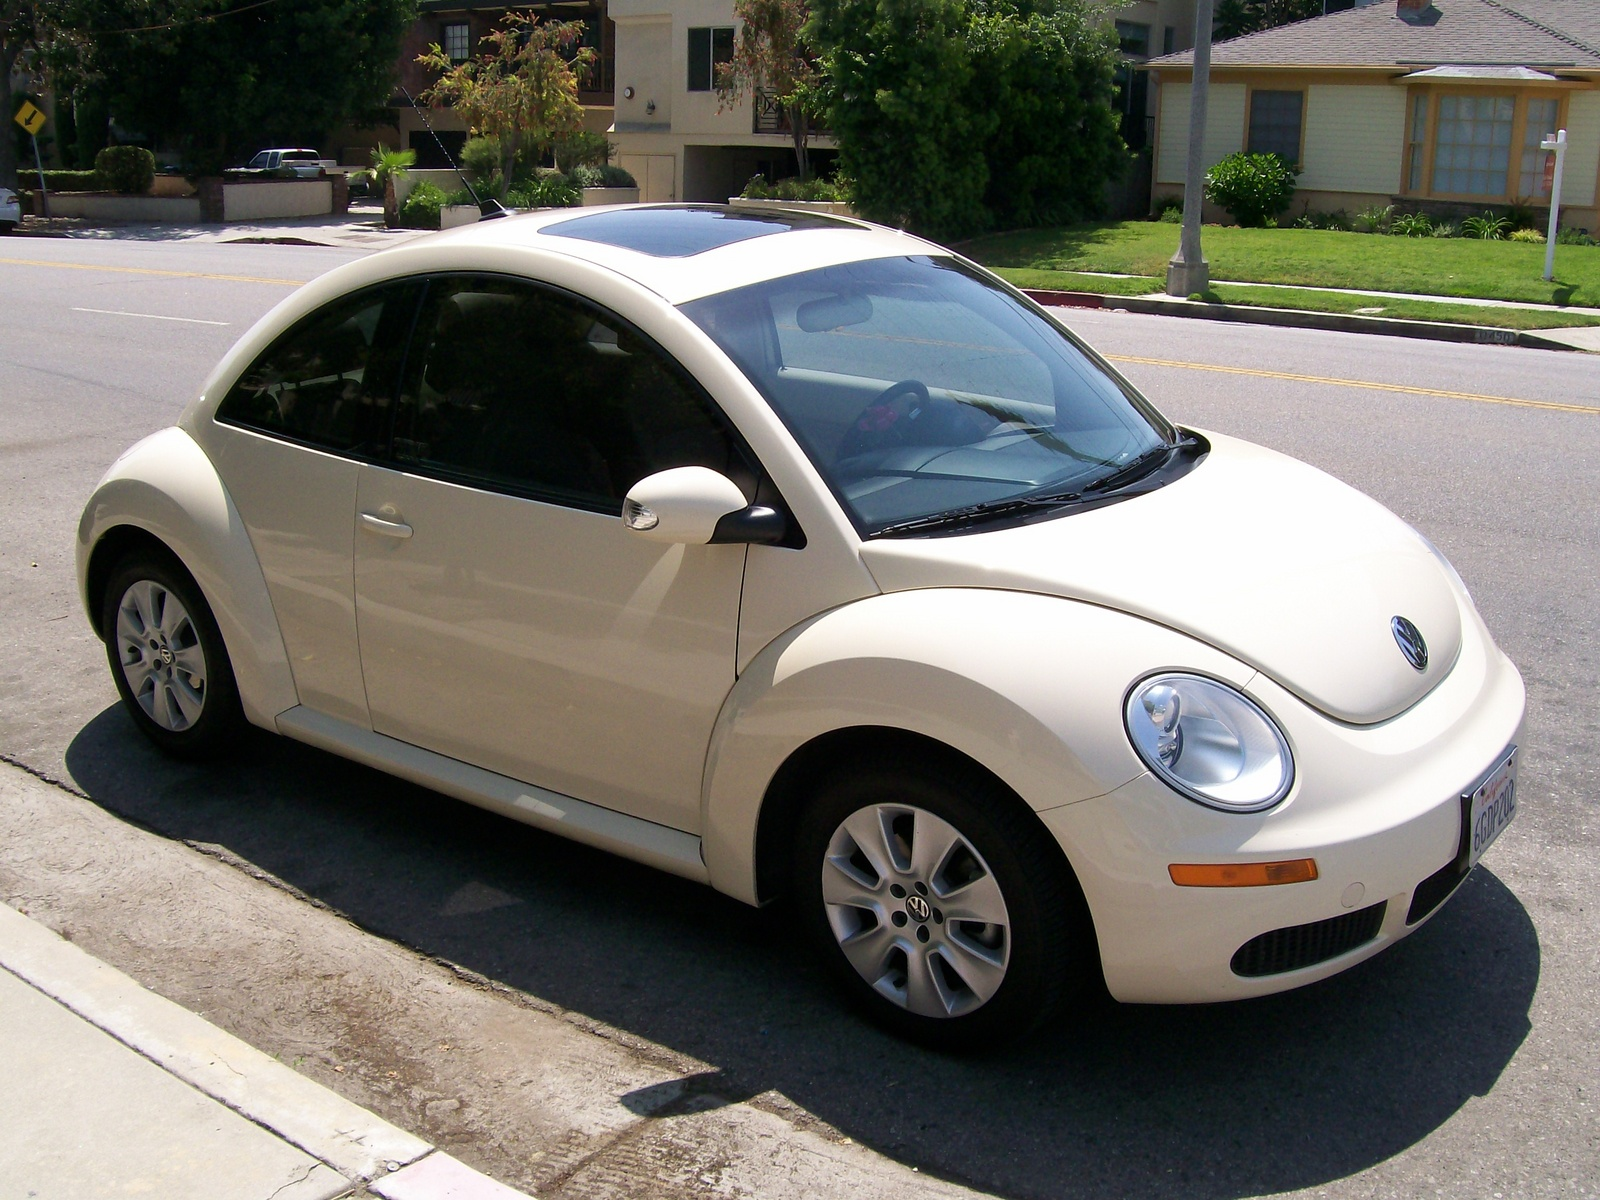 2009 volkswagen beetle pictures cargurus. Black Bedroom Furniture Sets. Home Design Ideas